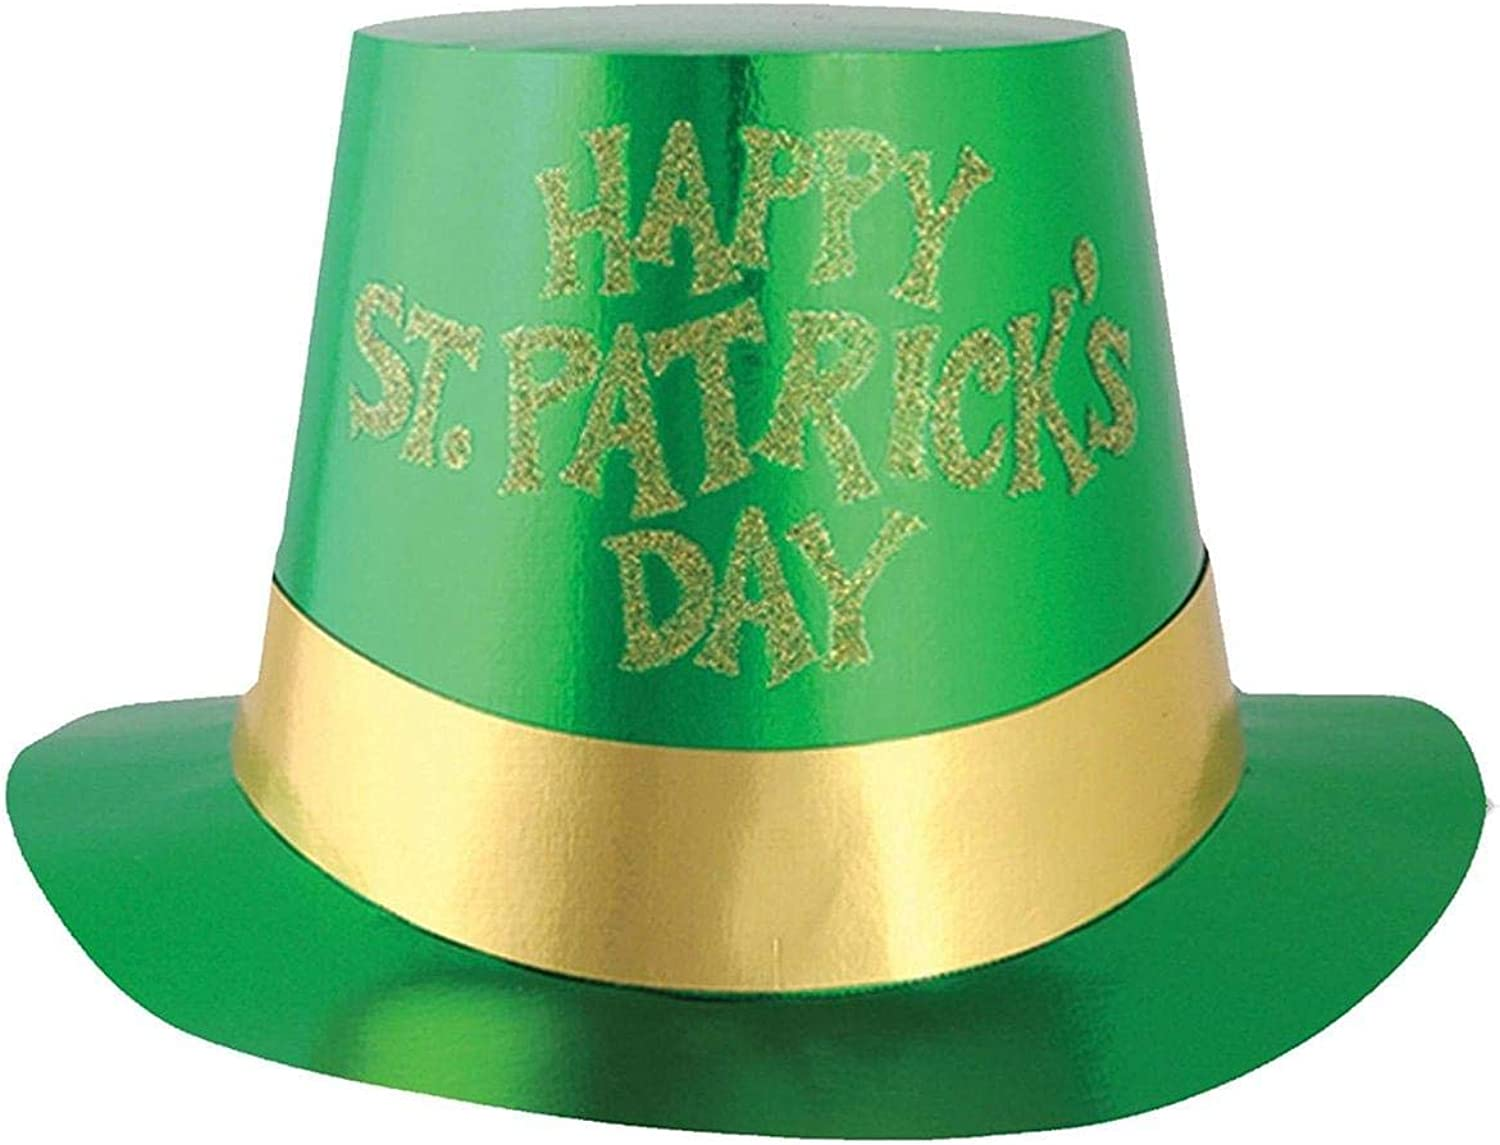 Beistle - 33620-C25 - Glittered St Patricks Day Foil Hi-Hat - Pack of 25